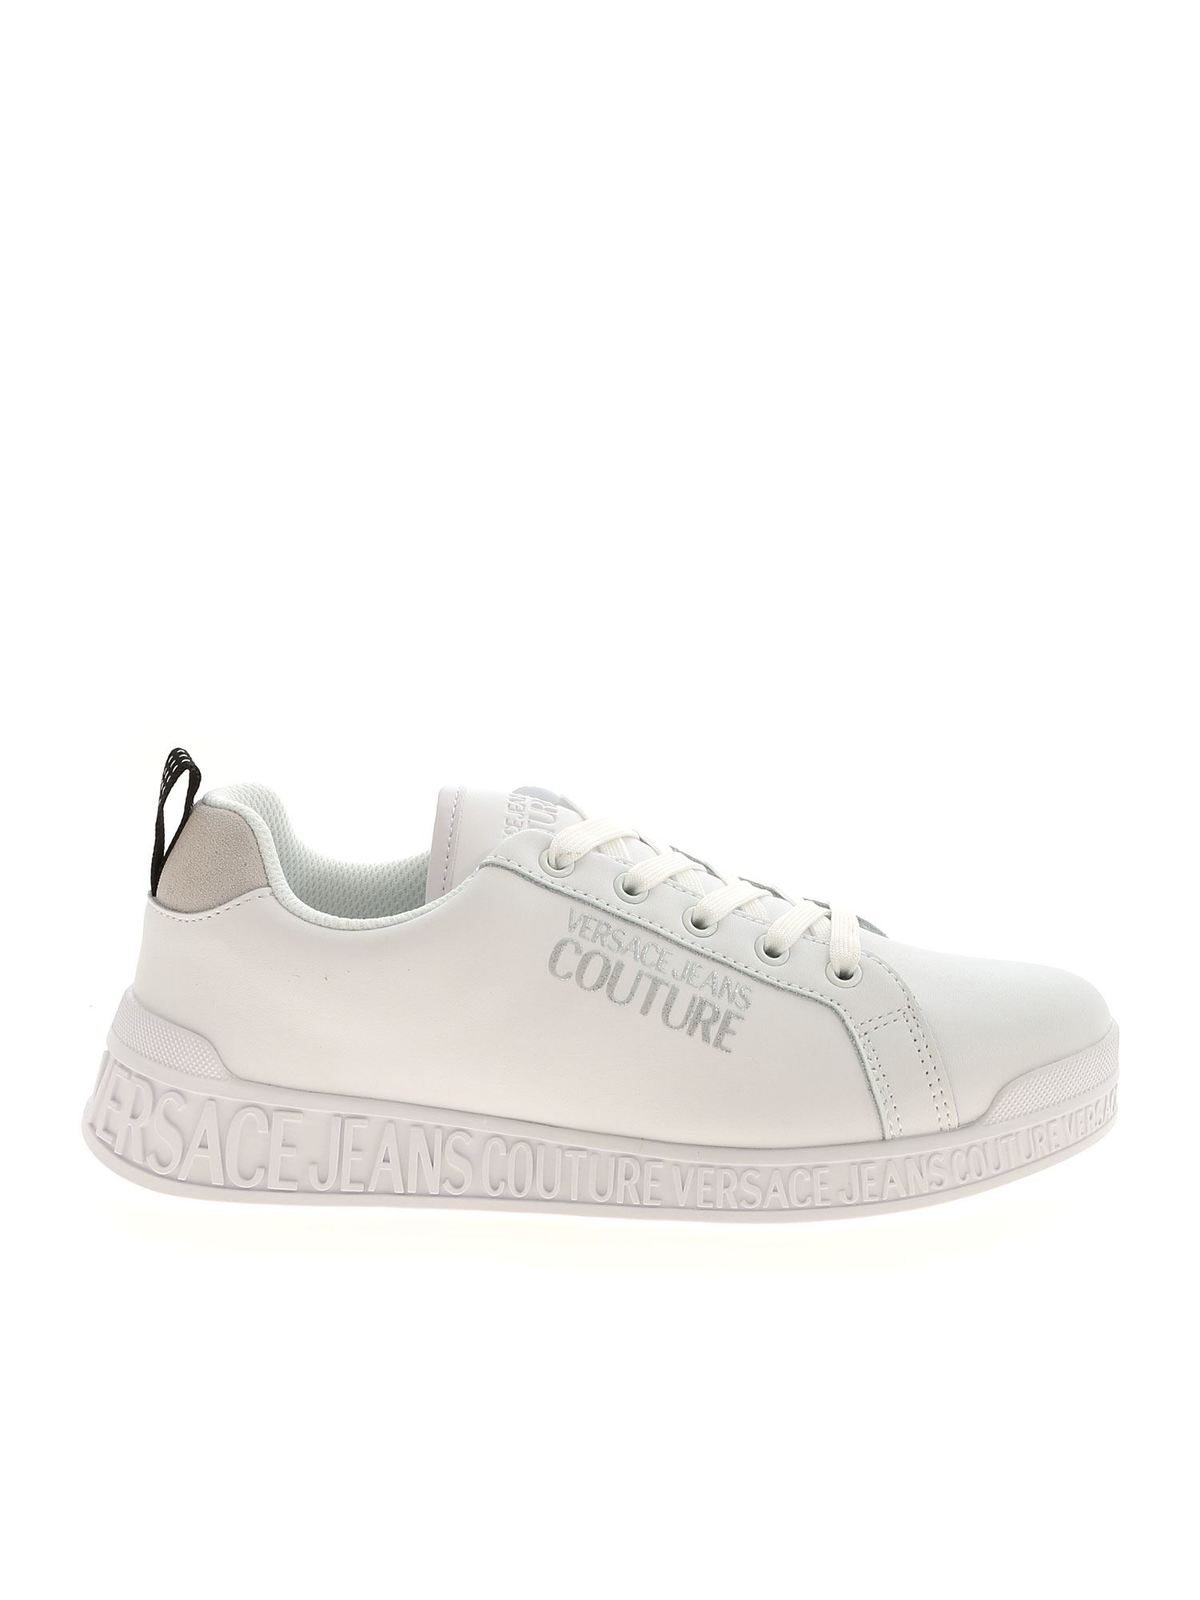 Versace Jeans Couture LOGO DETAIL SNEAKERS IN WHITE